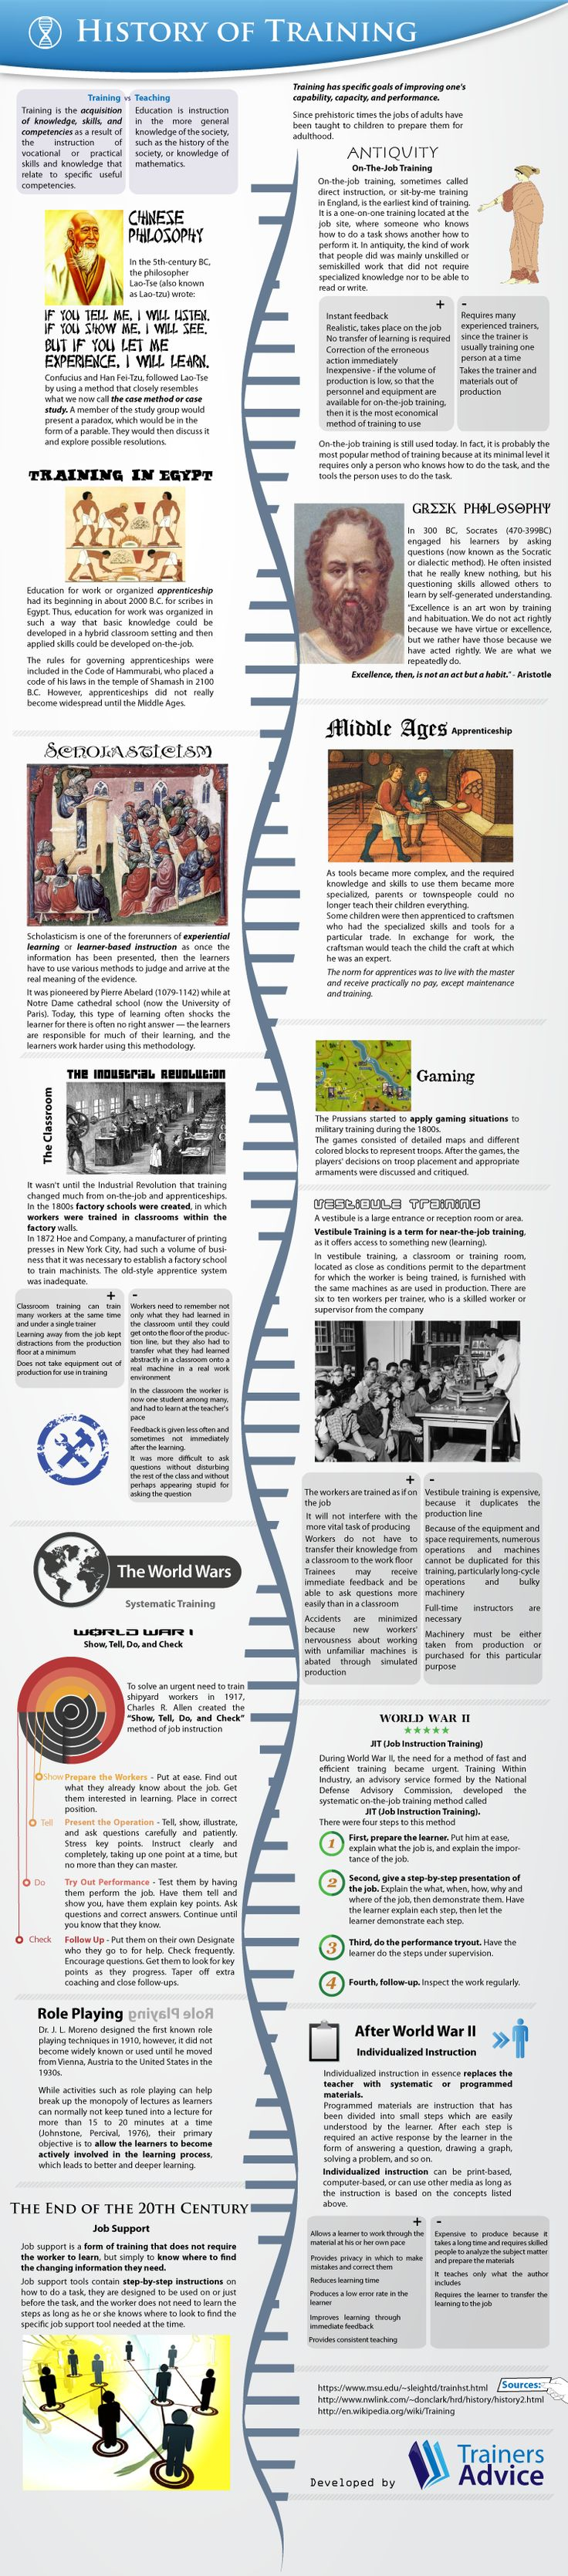 "Ever wondered how the ""training industry"" was born? Or where? How the learning process was done in the Middle Ages? What materials or teaching tools were used to develop competencies and behaviors?  Well your curiosity will be put to rest for we have created the History of Training Infographic to offer perspective and answers to all the questions above."